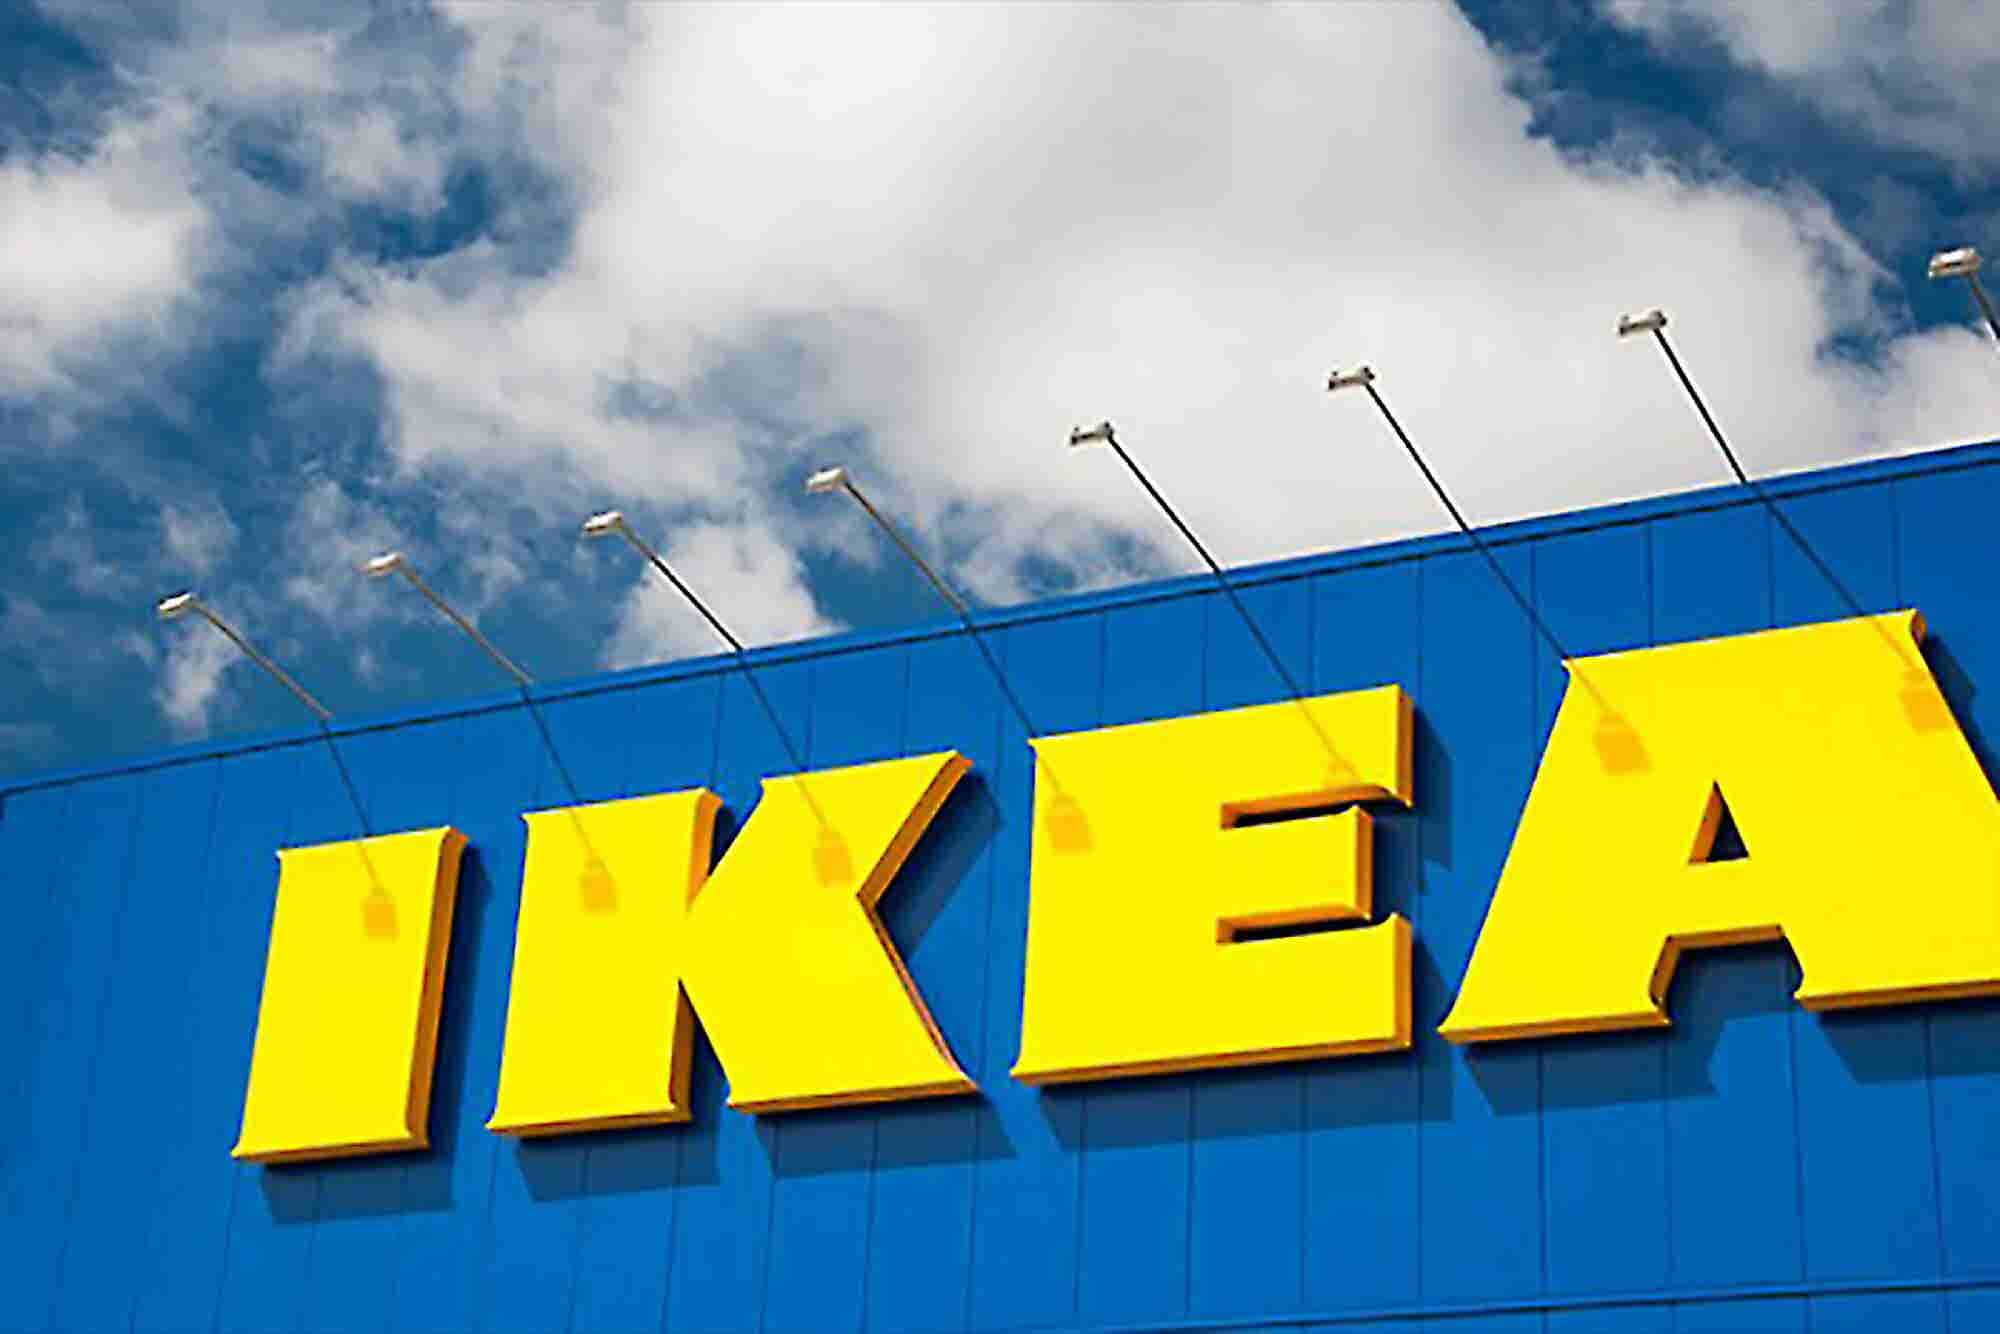 Ikea Eyeing 10,000 Job Creations in Maharashtra